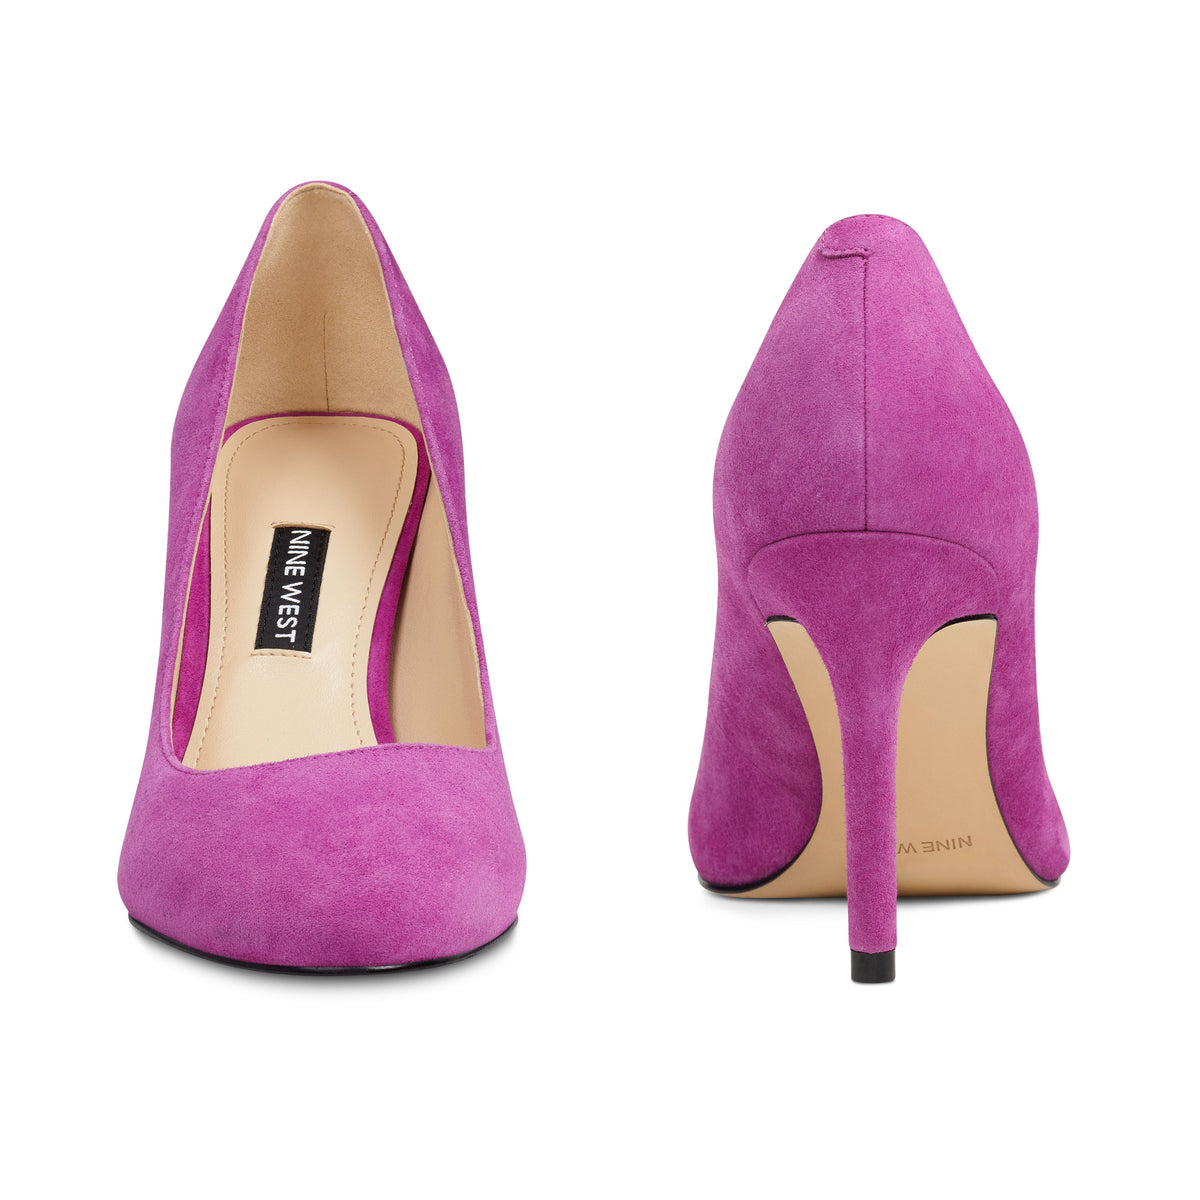 dylan-round-toe-pumps-in-dark-pink-suede